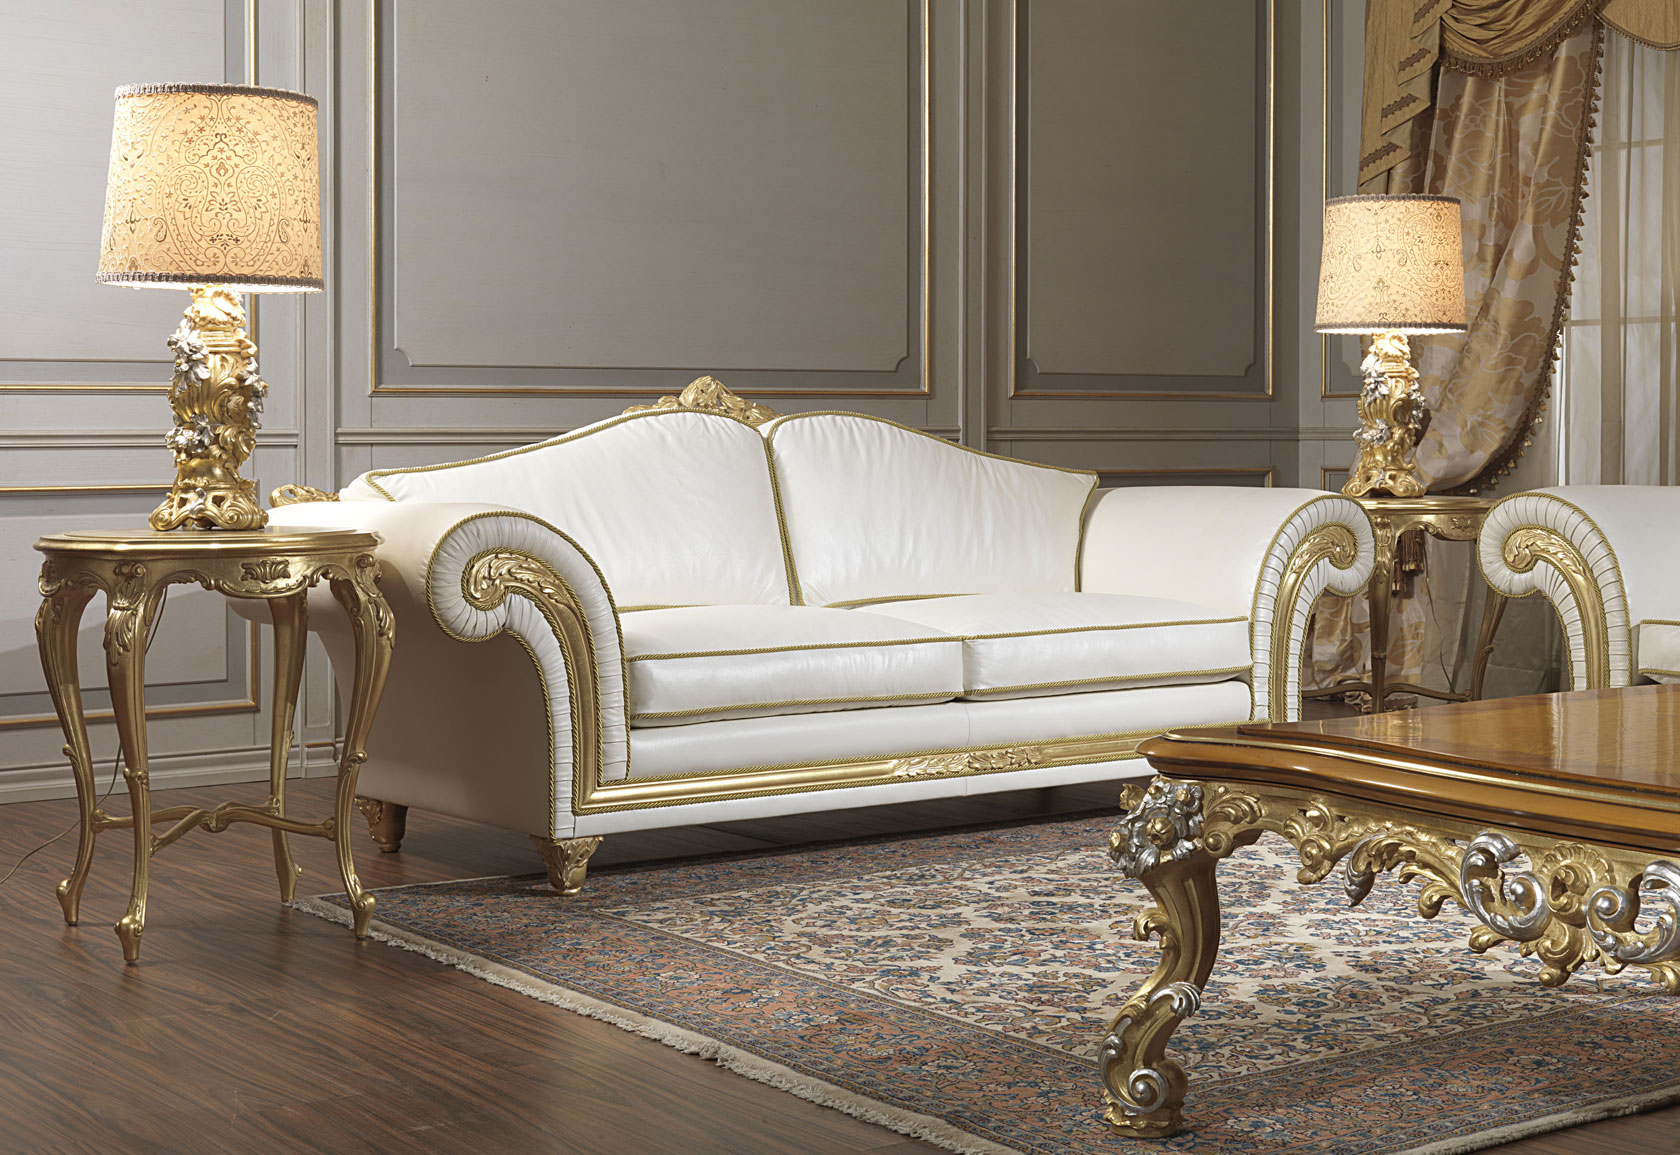 classic sofa imperial in white leather vimercati classic. Black Bedroom Furniture Sets. Home Design Ideas